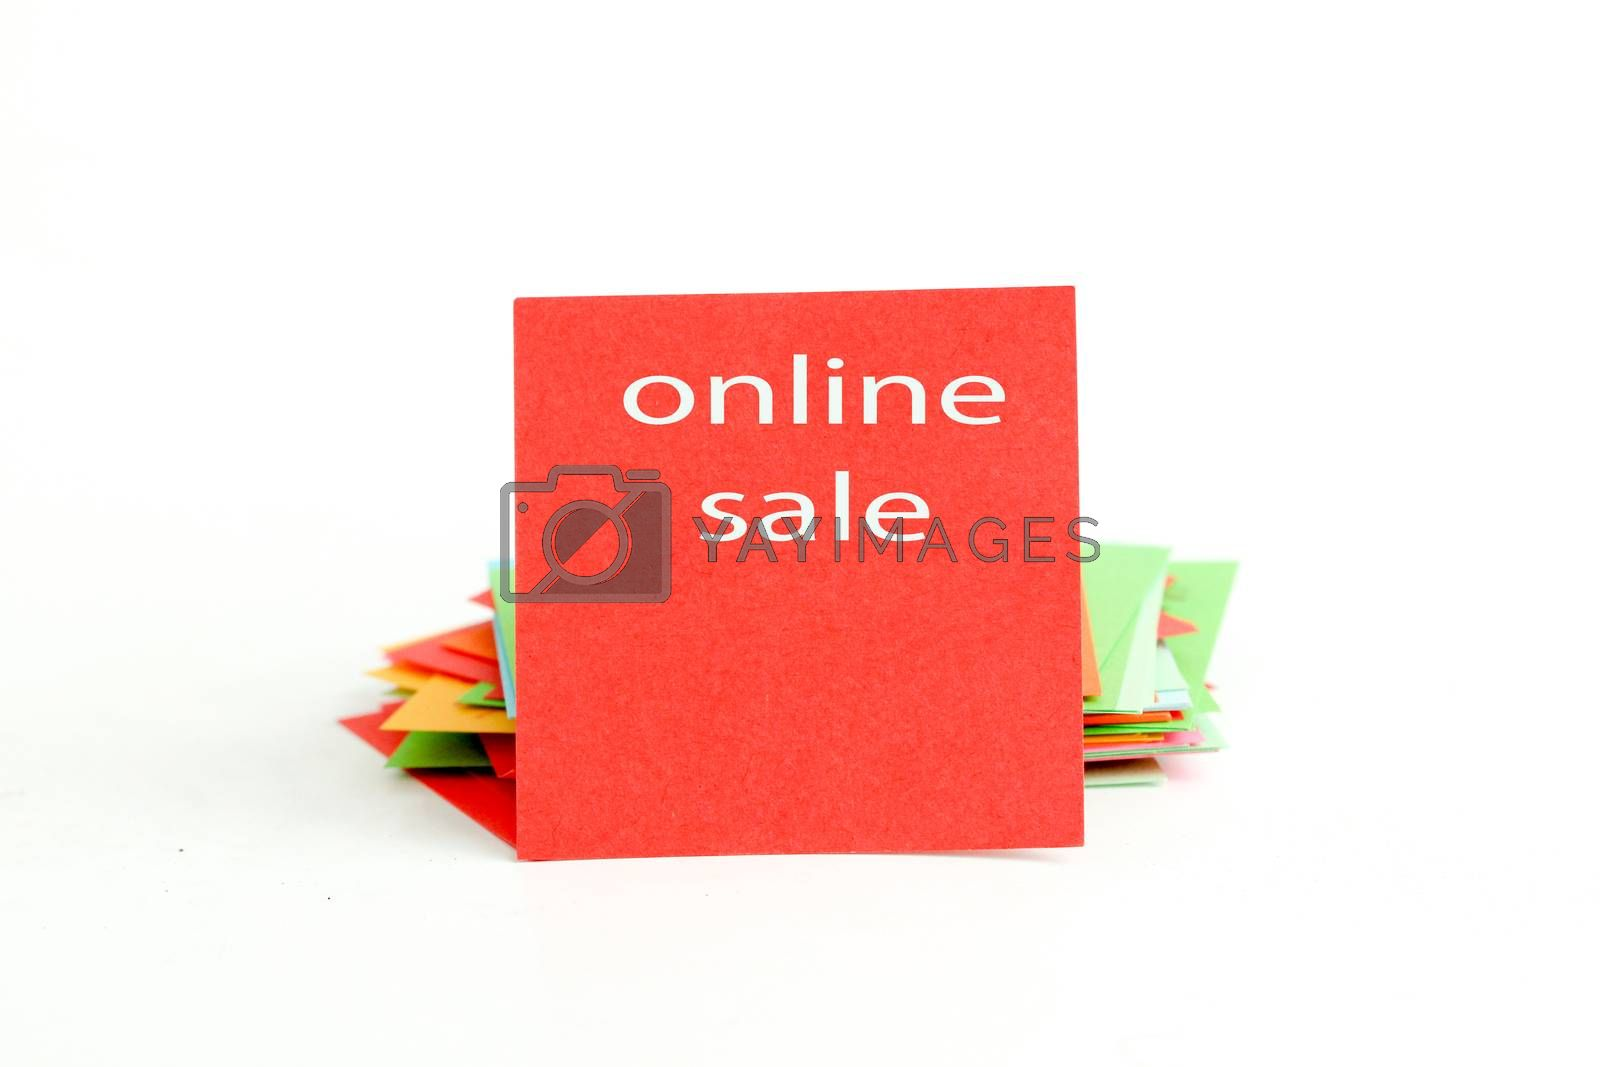 picture of a red note paper with text online sale